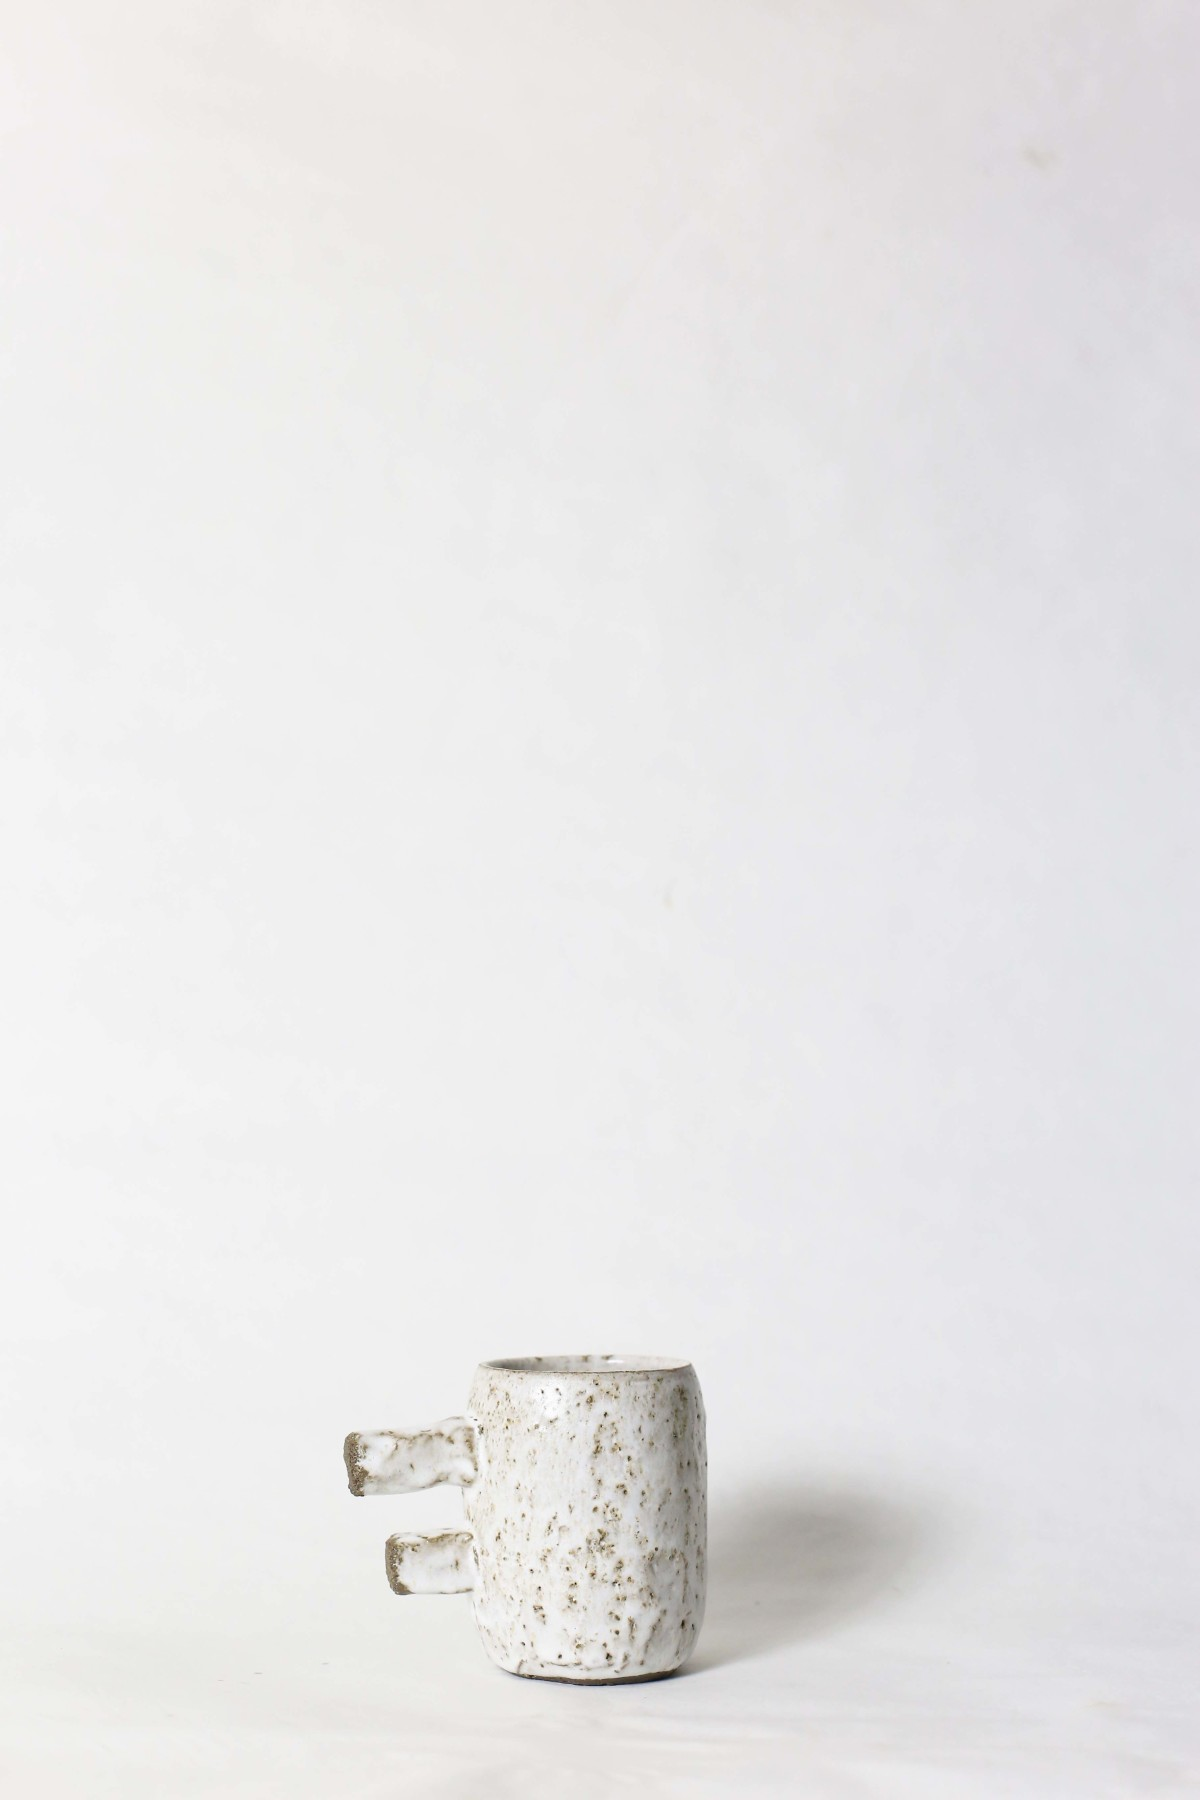 spotty white ceramic cup with two stick handle on a white background 1